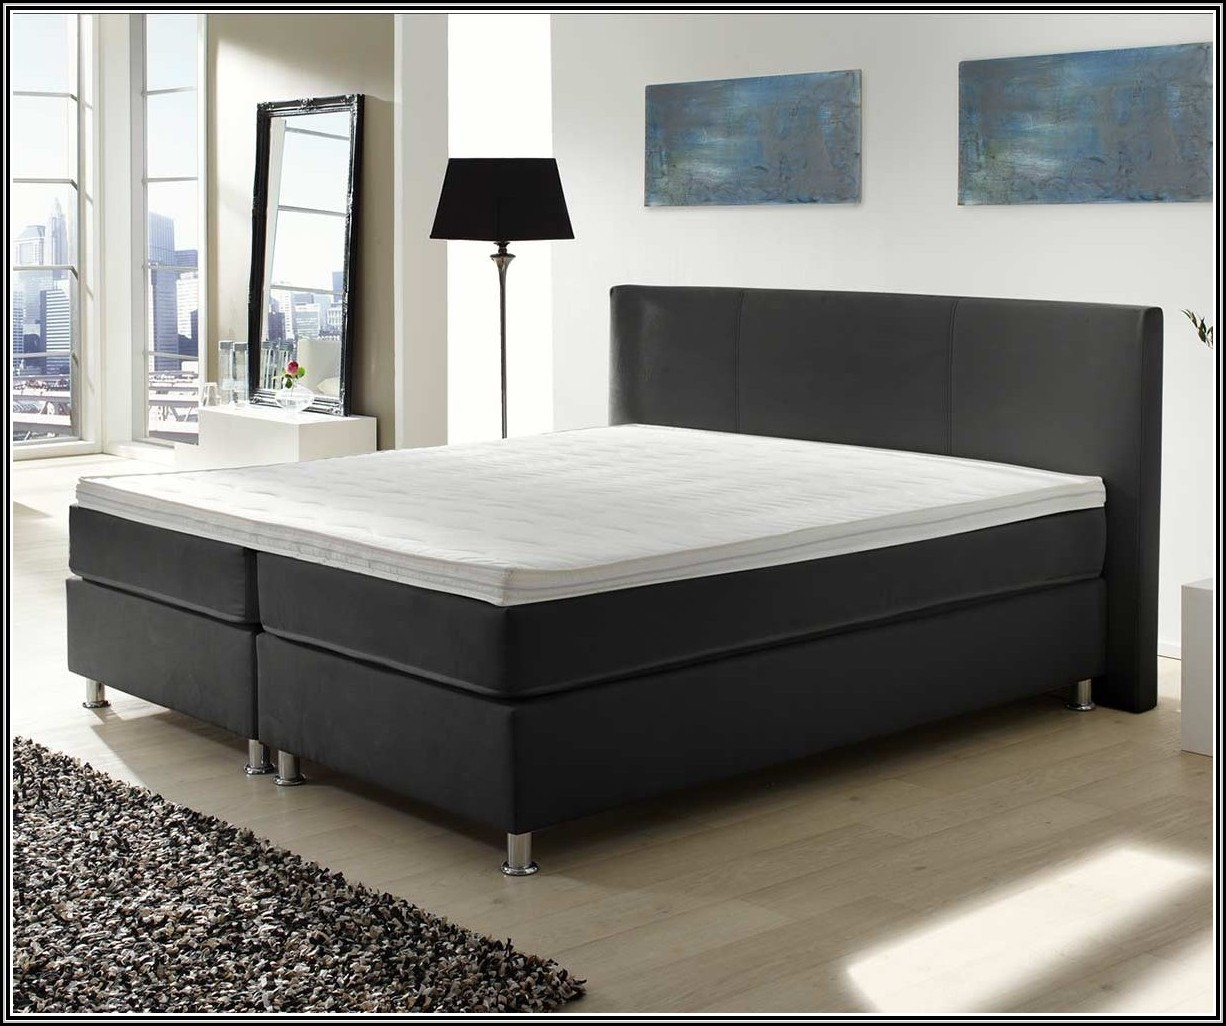 bett 160x200 ohne matratze betten house und dekor galerie rw1moyzkdp. Black Bedroom Furniture Sets. Home Design Ideas